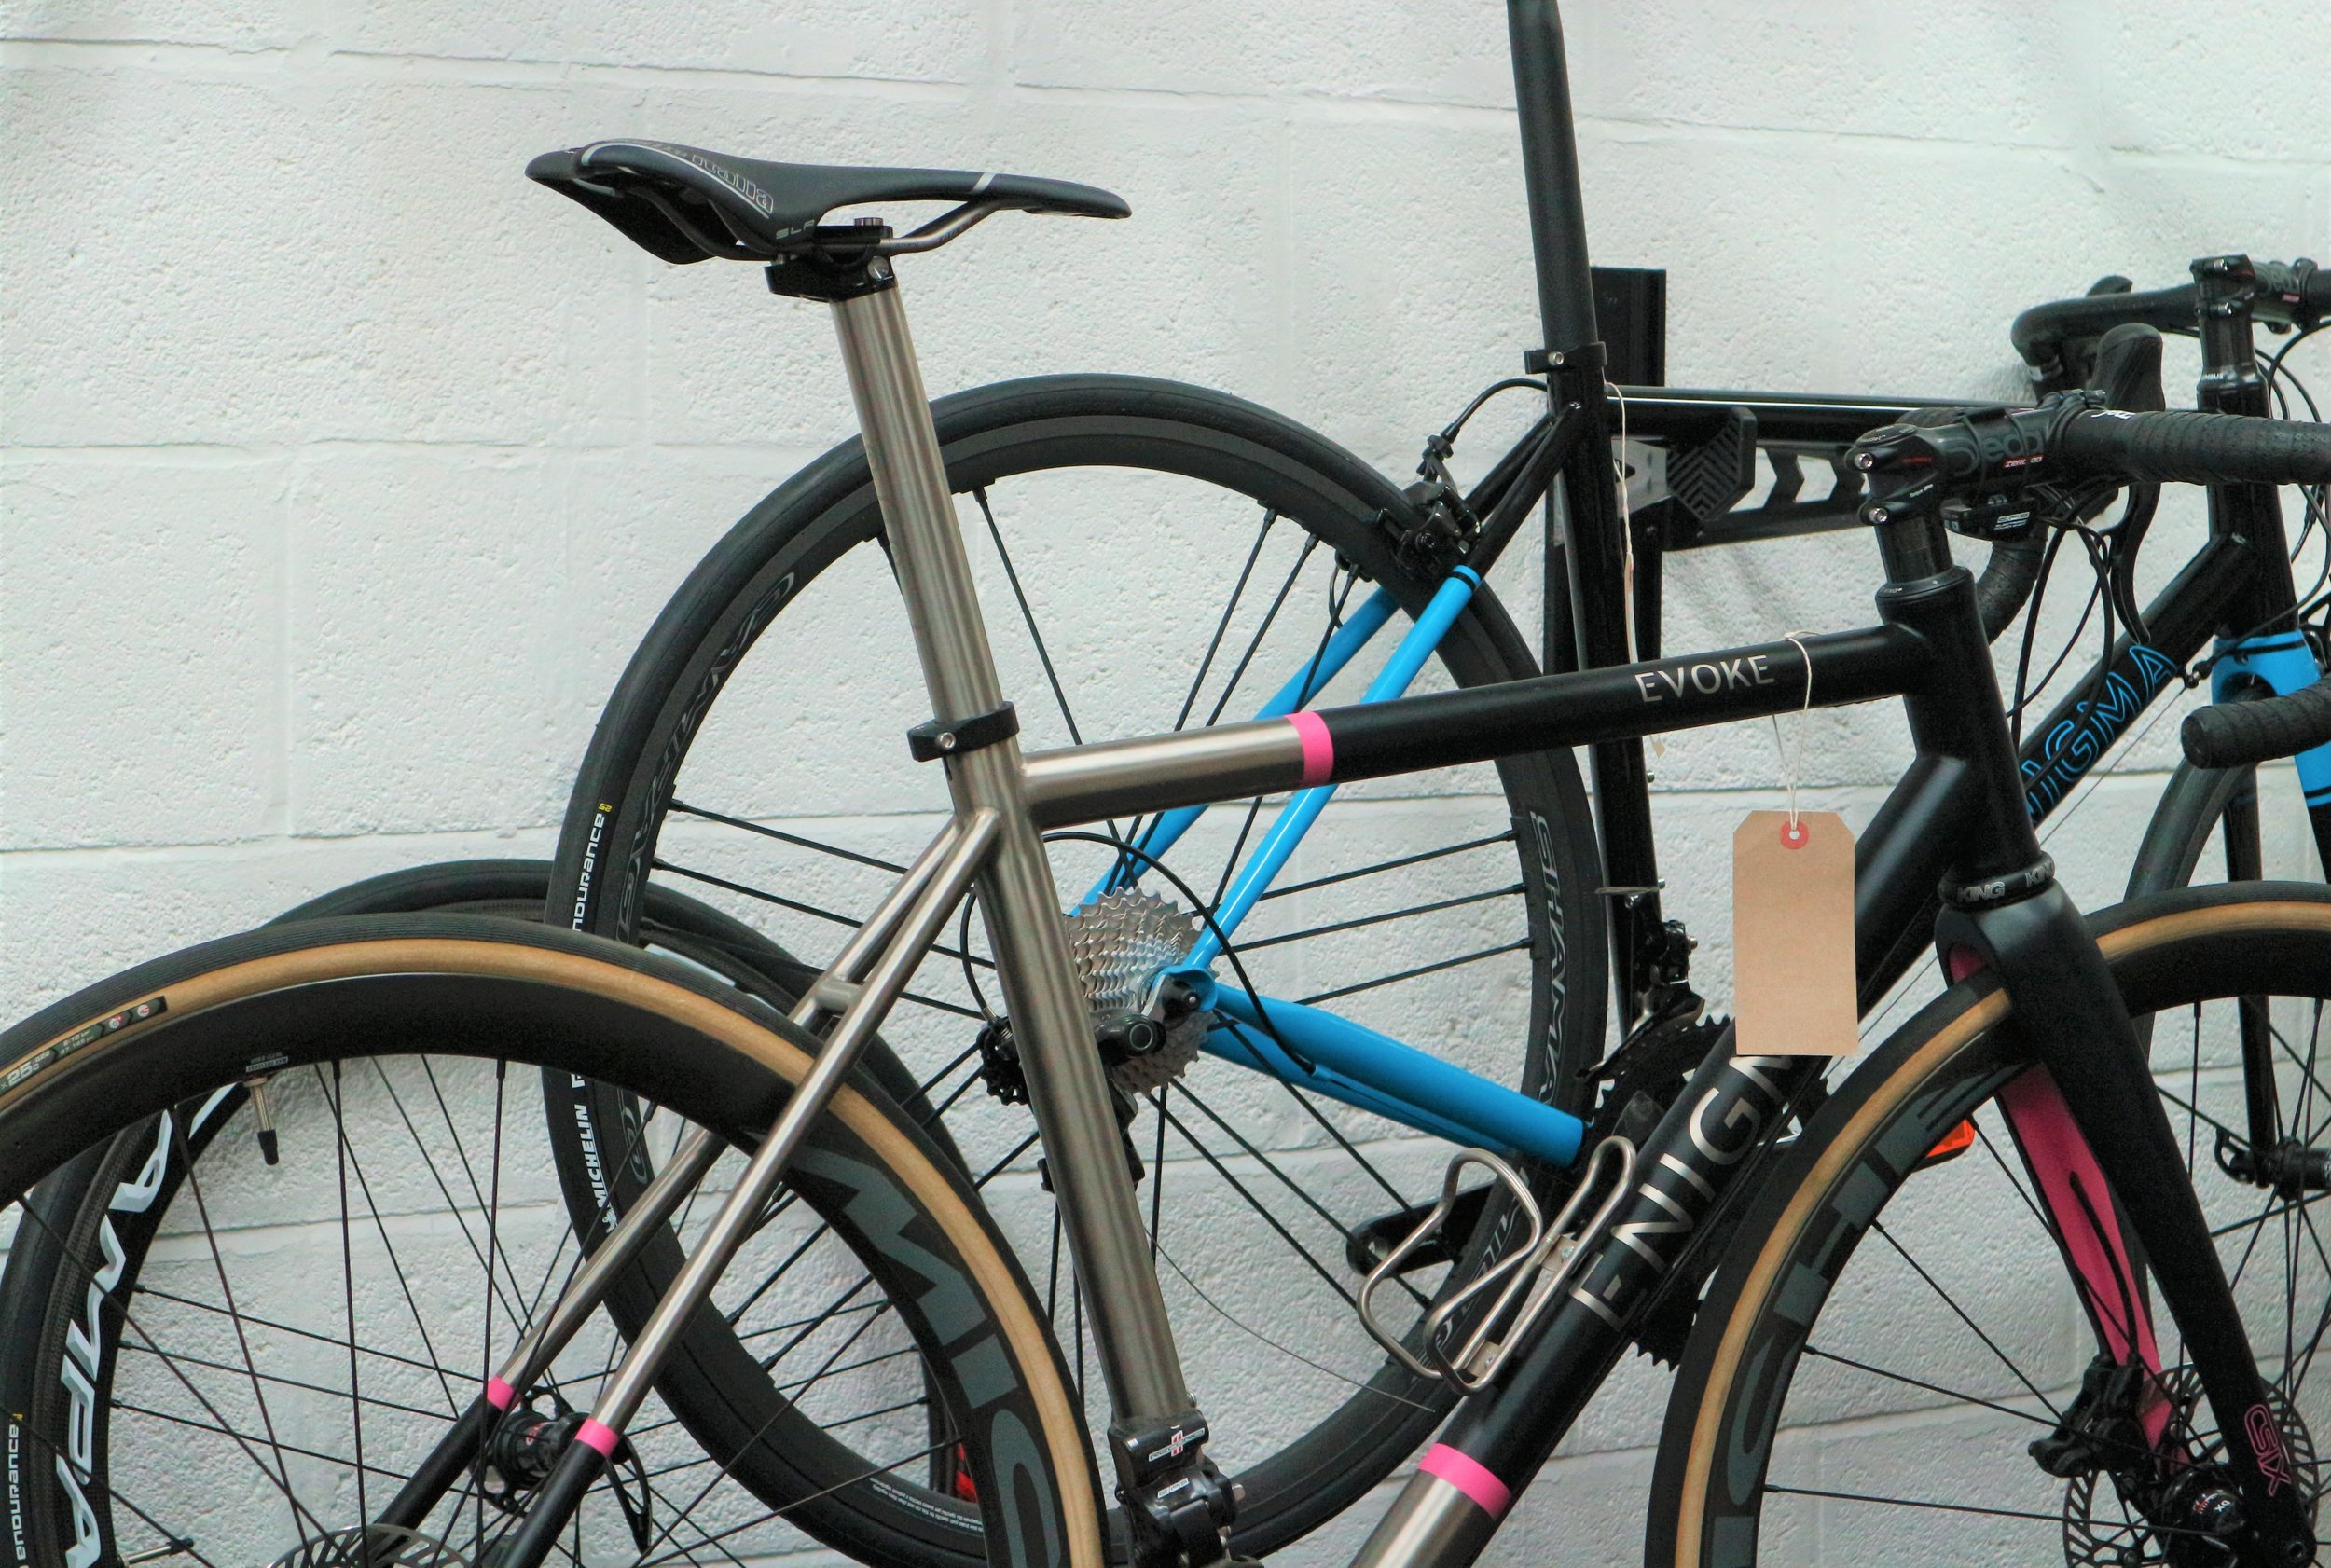 PMP Titanium Classic seatpost. 20mm layback and 31.6mm option shown here on Enigma Evoke.